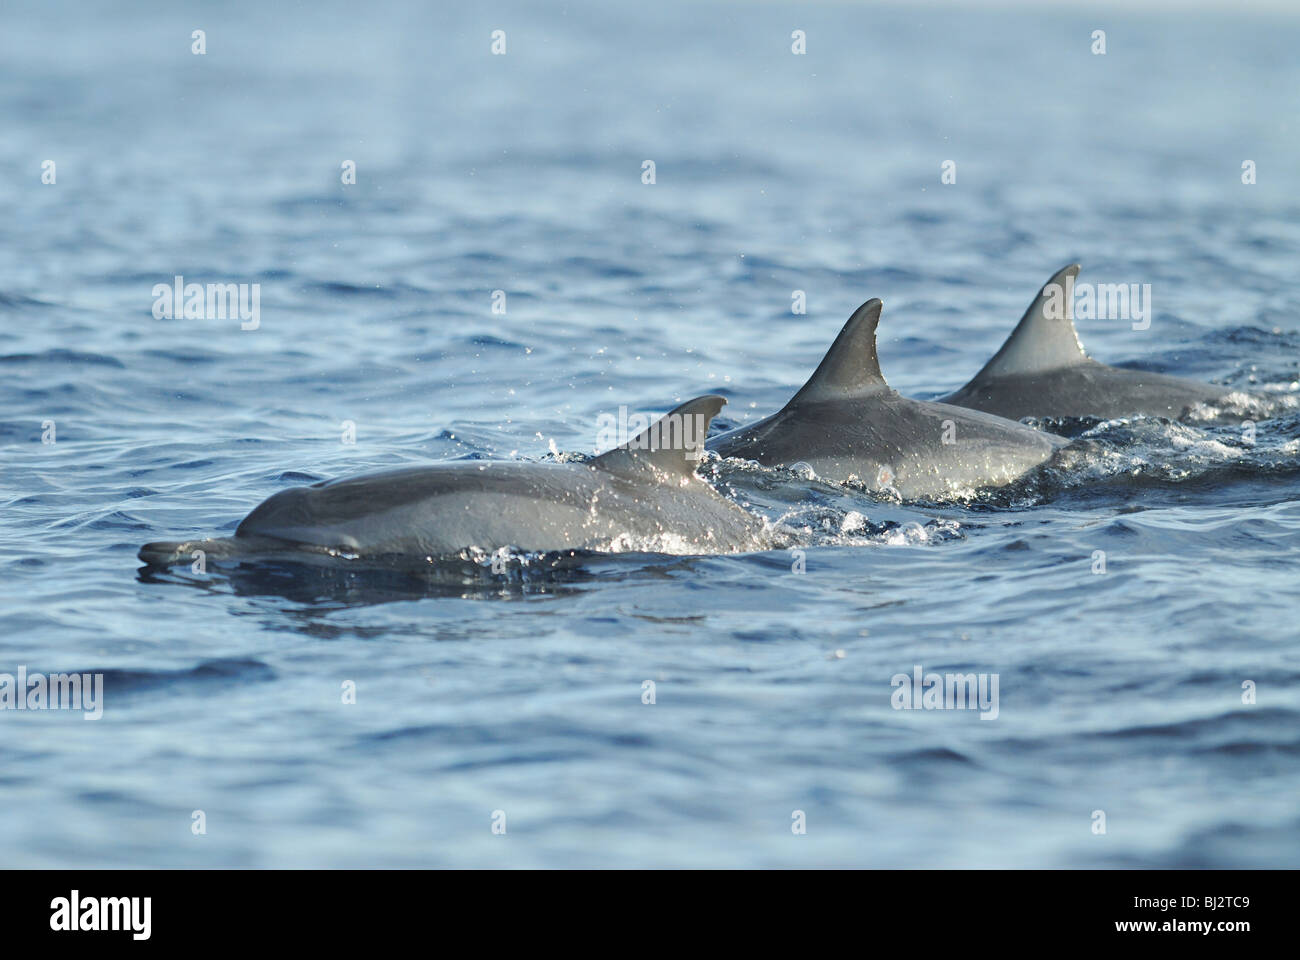 A pod of Indo-pacific Bottlenose Dolphins (Tursiops aduncus) in Lovina Bay, off the north coast of Bali, July 2007. - Stock Image